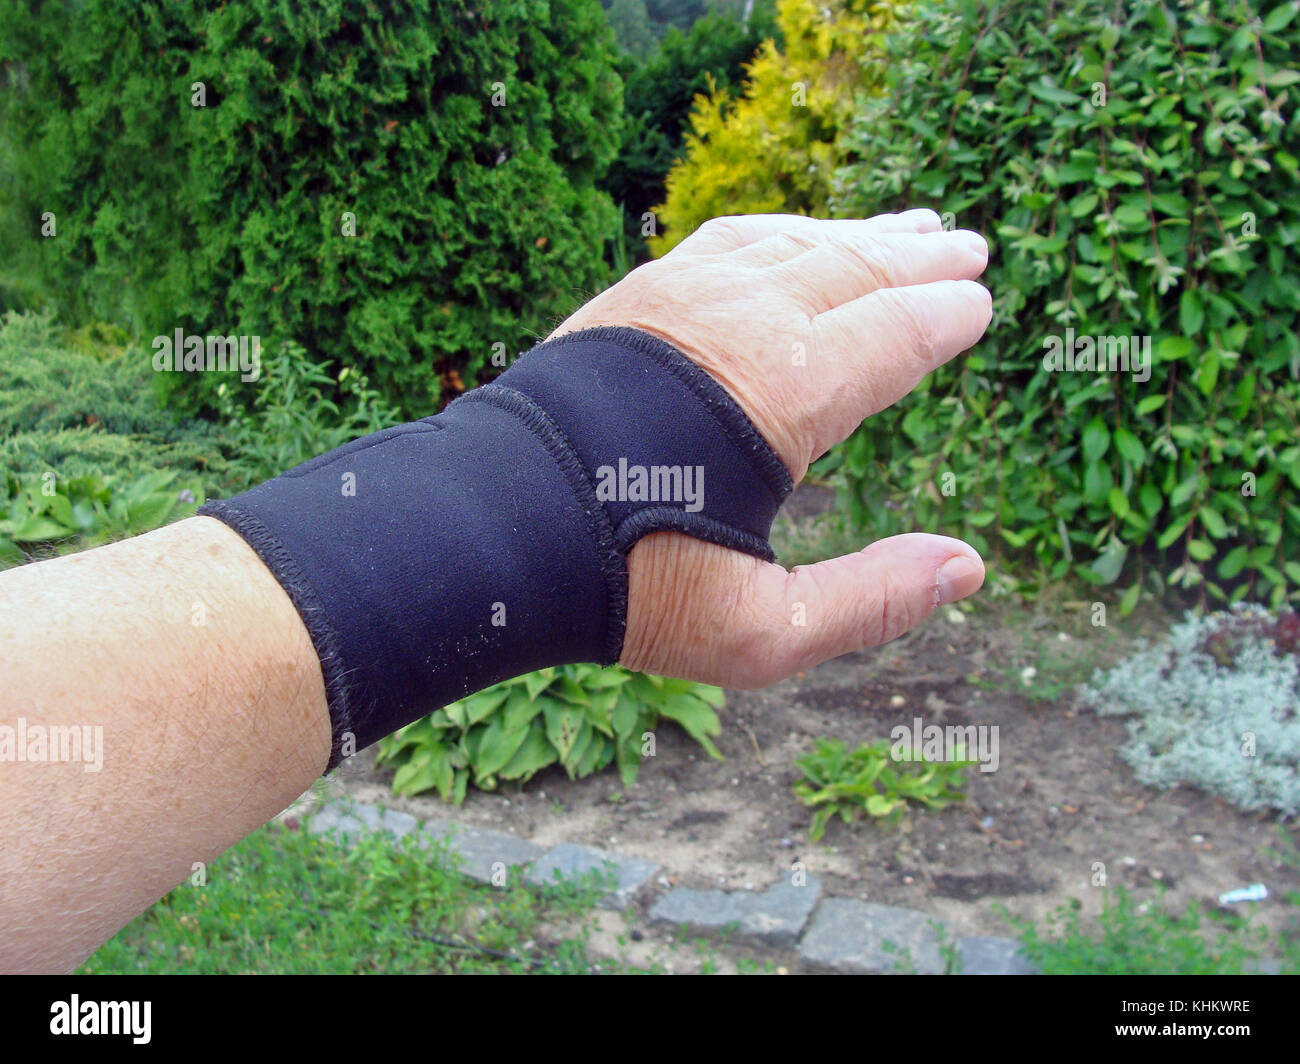 Hand with black color elastic bandage on wrist joint close up outdoor. - Stock Image